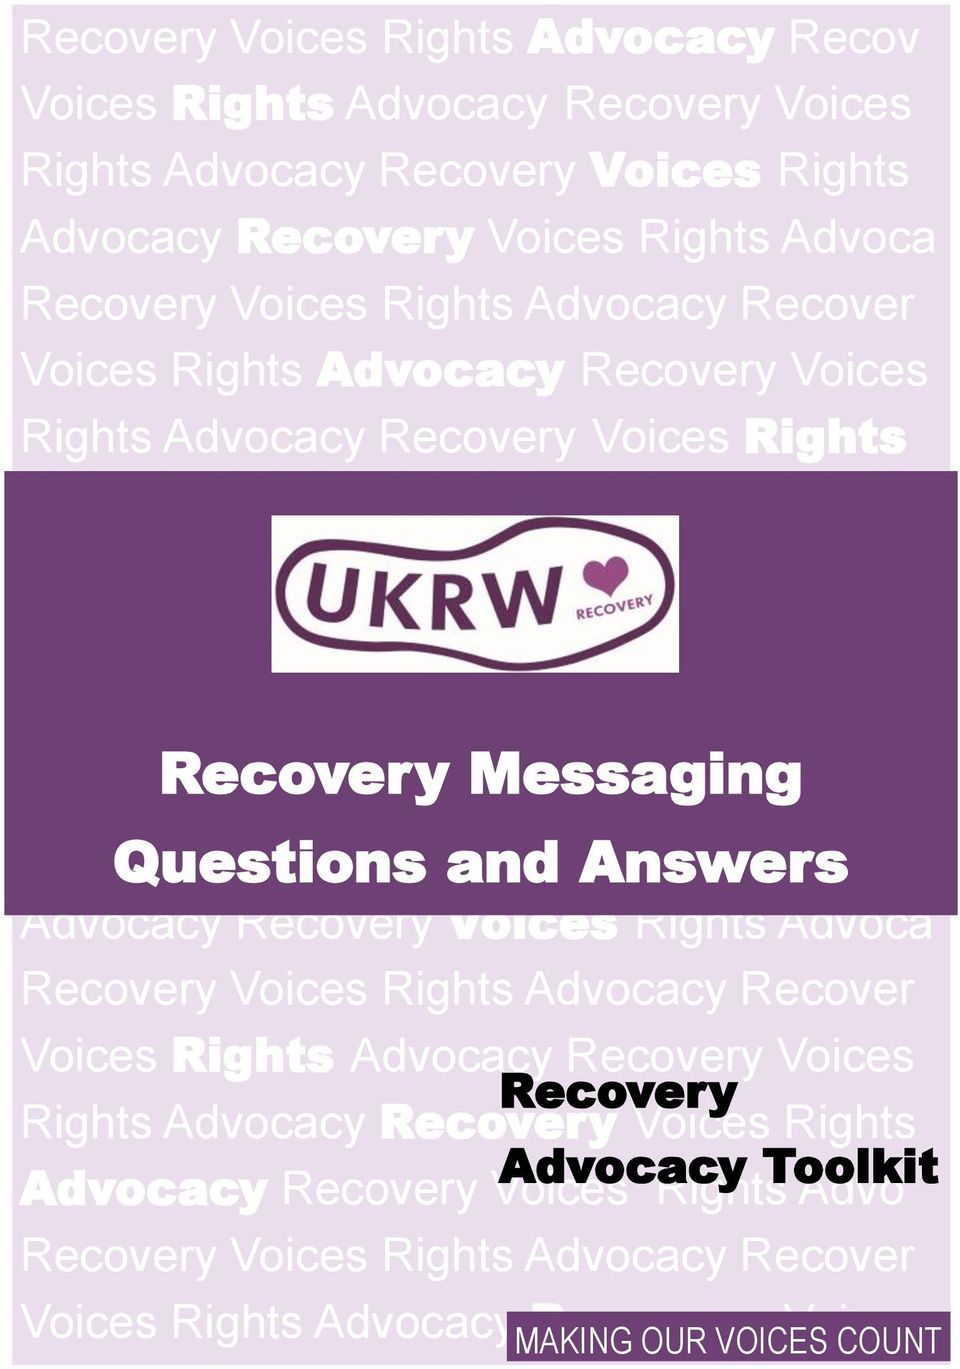 Recovery Voices Rights Questions Advocacy Recovery and Answers Voices Rights Advocacy Recovery Voices Rights Advoca Recovery Voices Rights Advocacy Recover Voices Rights Advocacy Recovery Voices